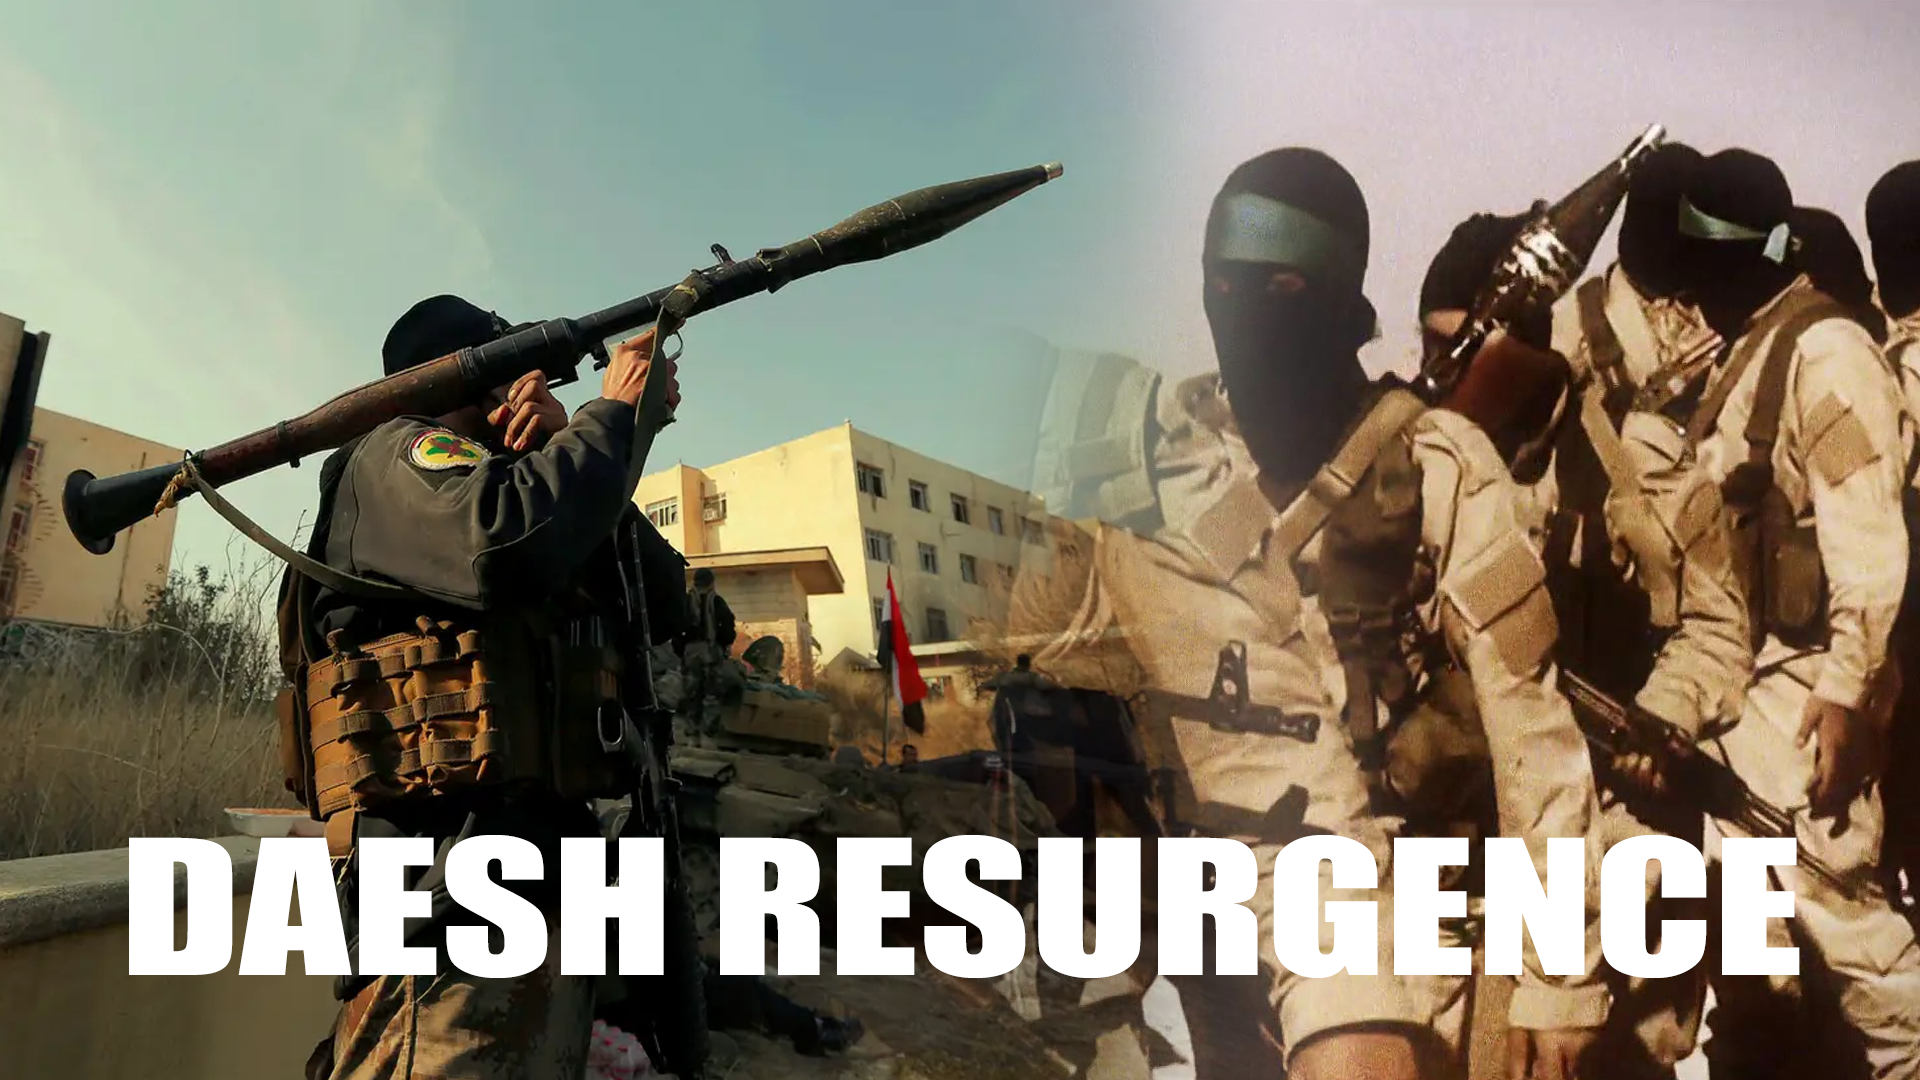 Daesh resurgence, backed by the West